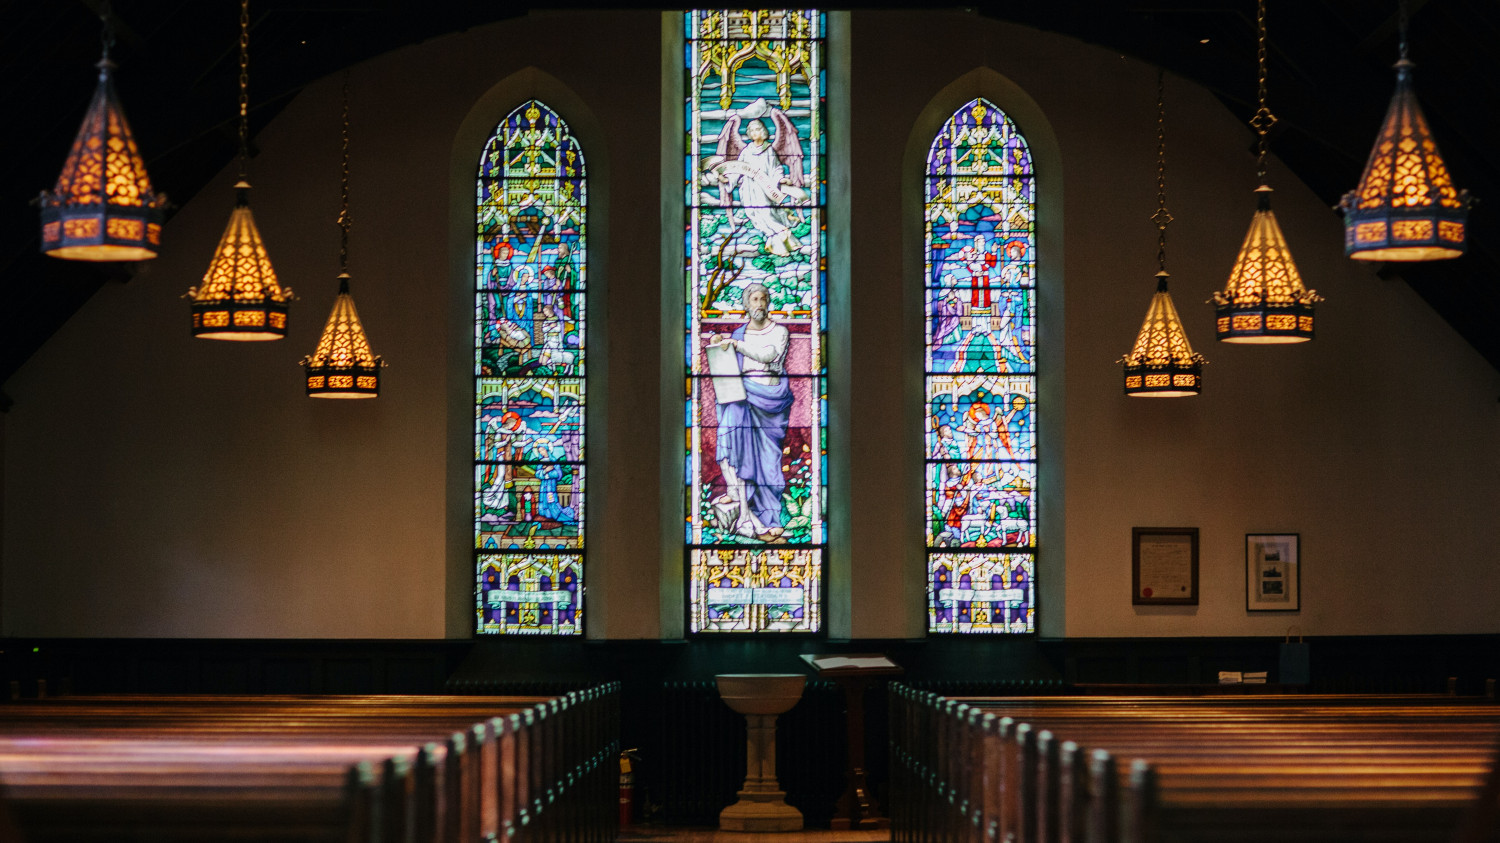 Image of stained glass windows within a church